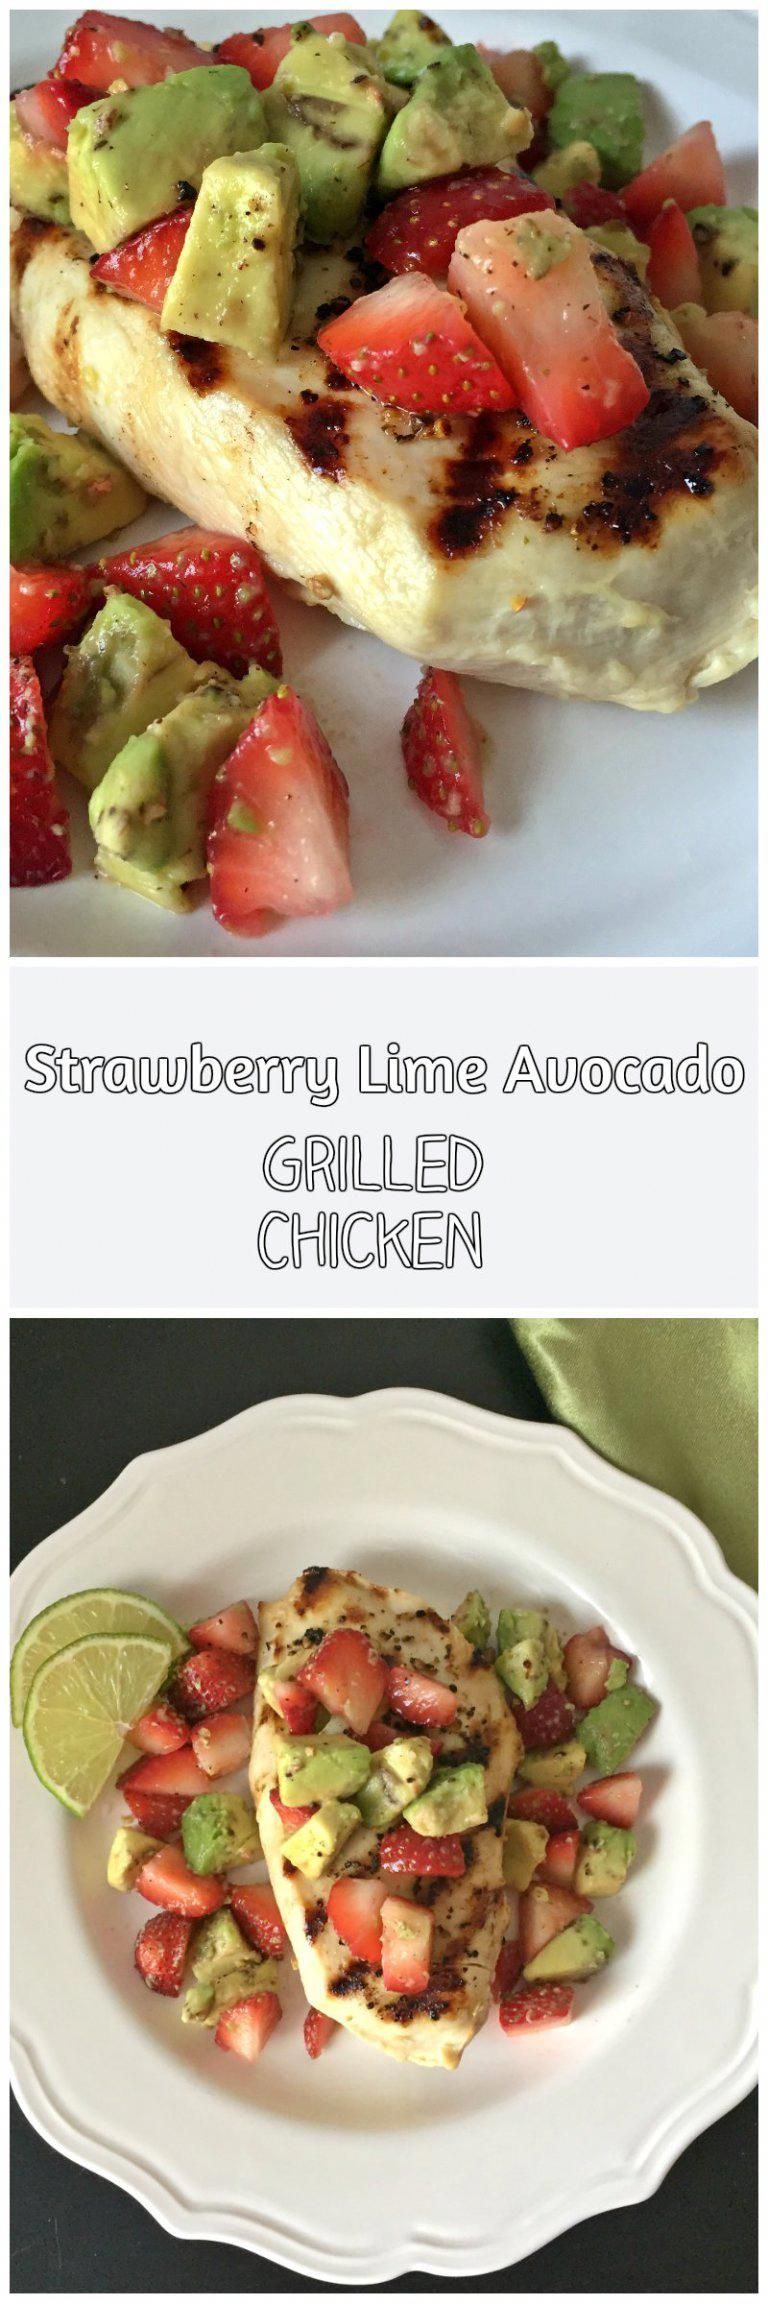 Strawberry Lime Avocado Grilled Chicken 2 Chicken Breast 4oz Each